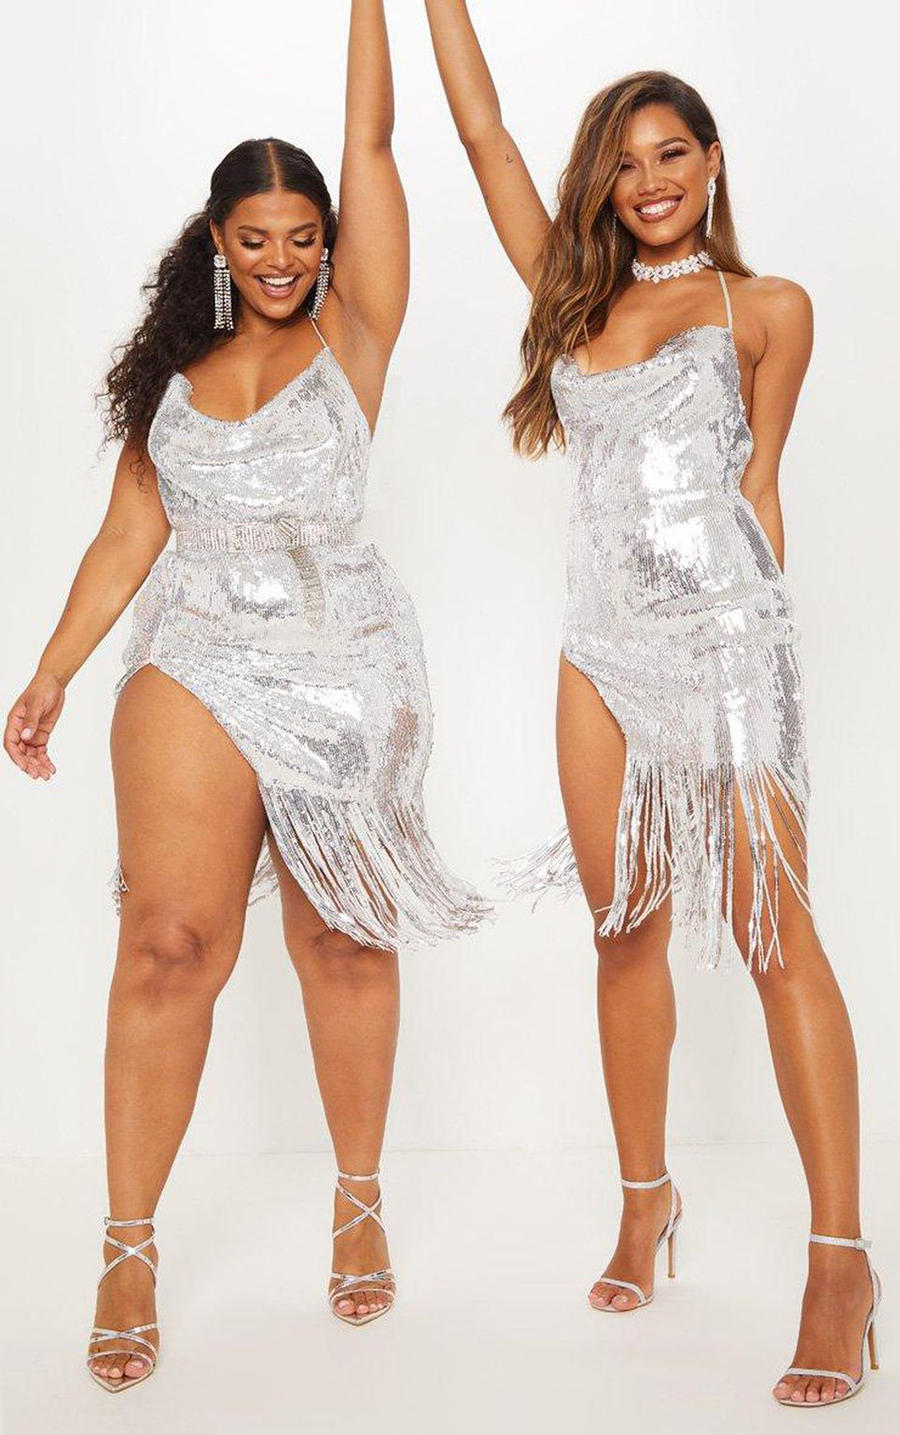 PrettyLittleThing praised for showing outfits on different size models